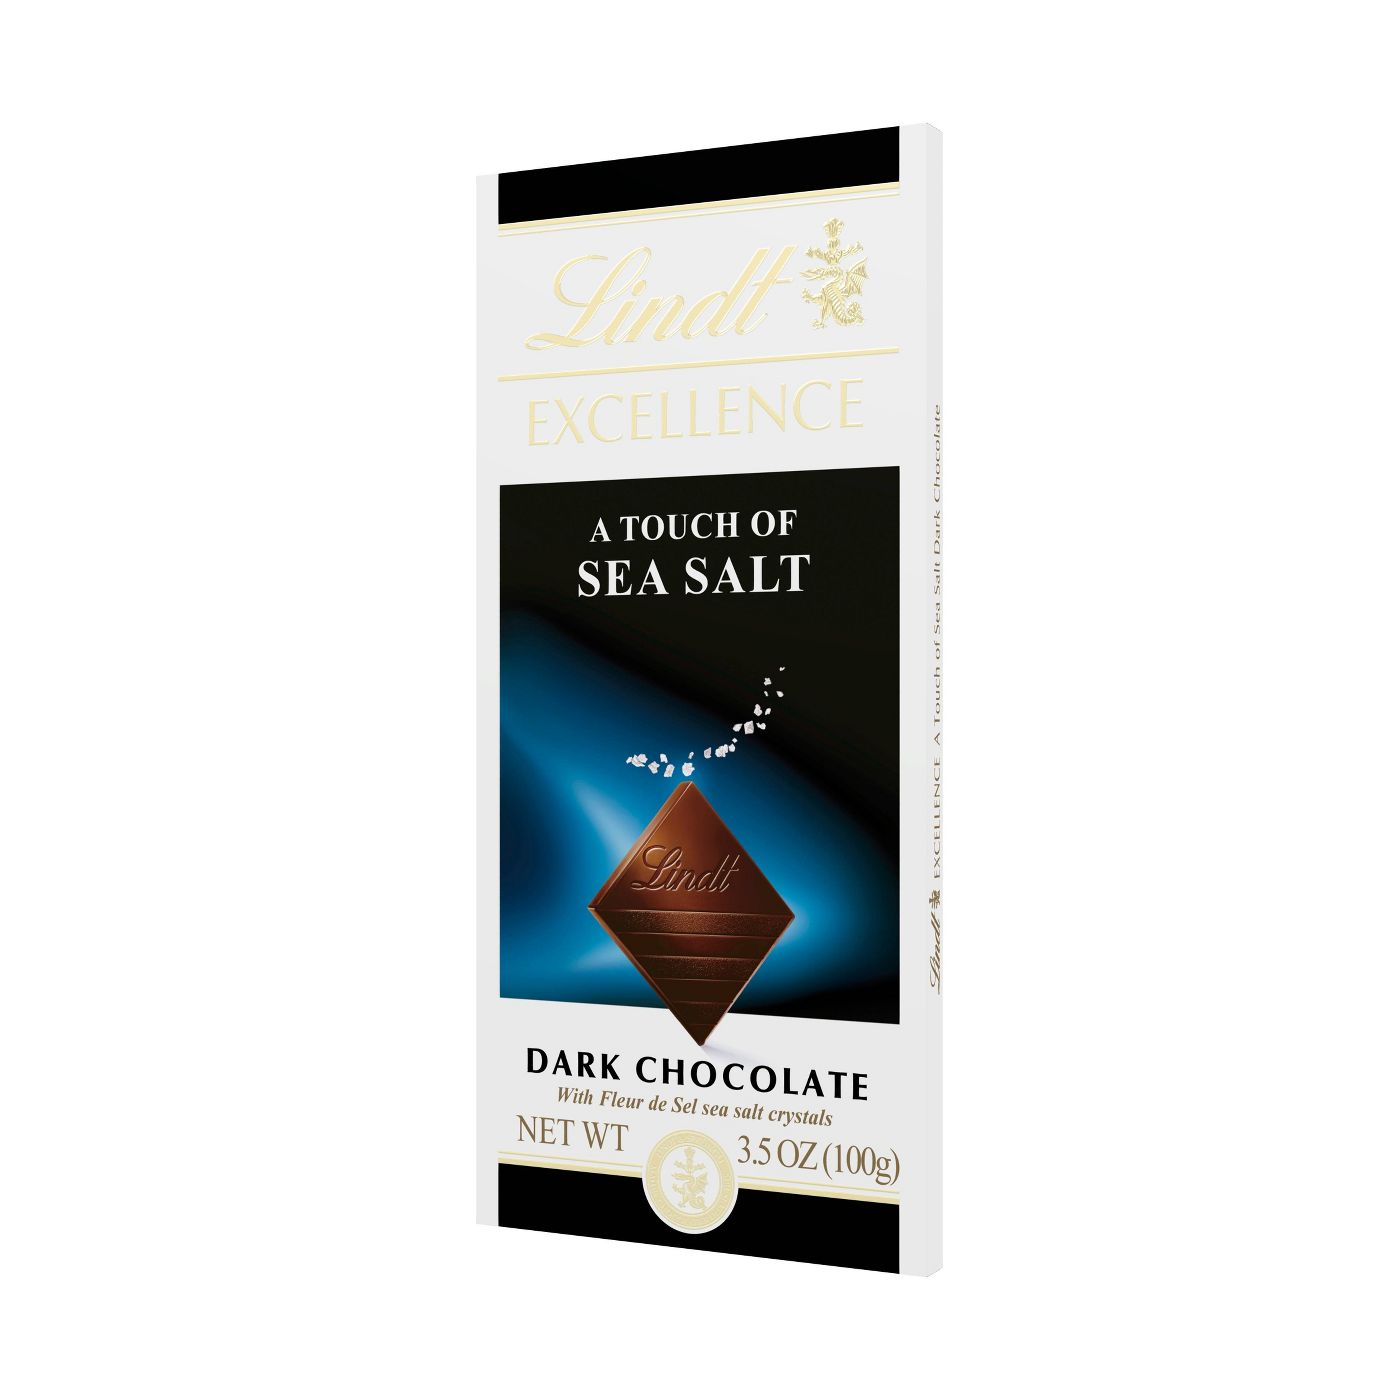 Lindt Excellence Sea Salt Dark Chocolate Bar, 3.5oz